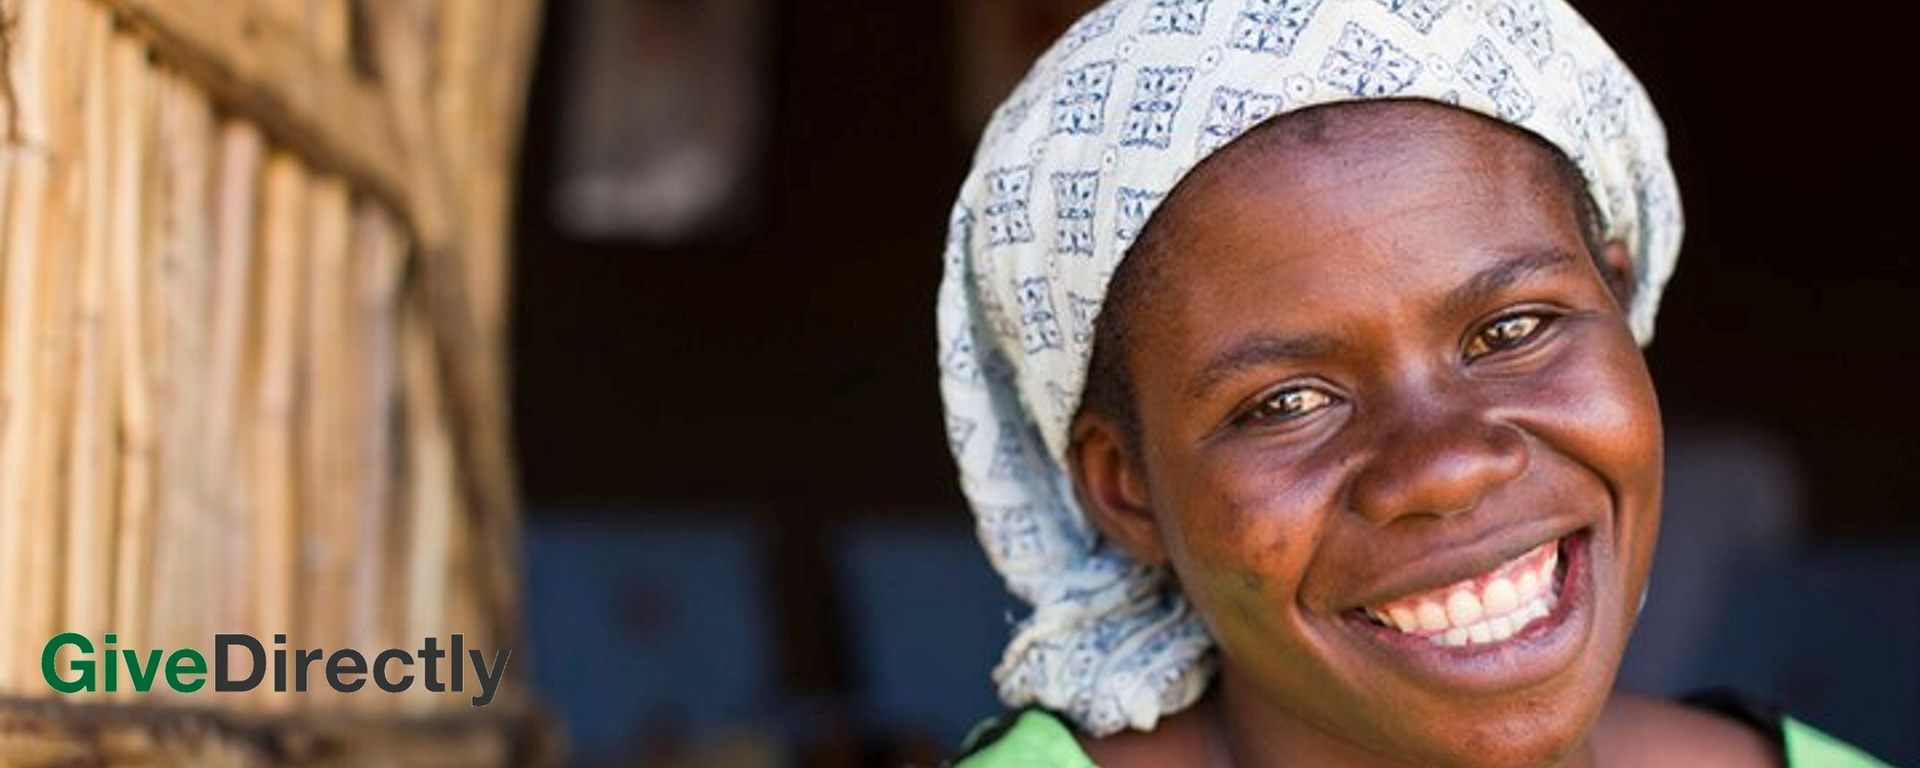 GiveDirectly - Regional Director Movemeback African opportunity cover image